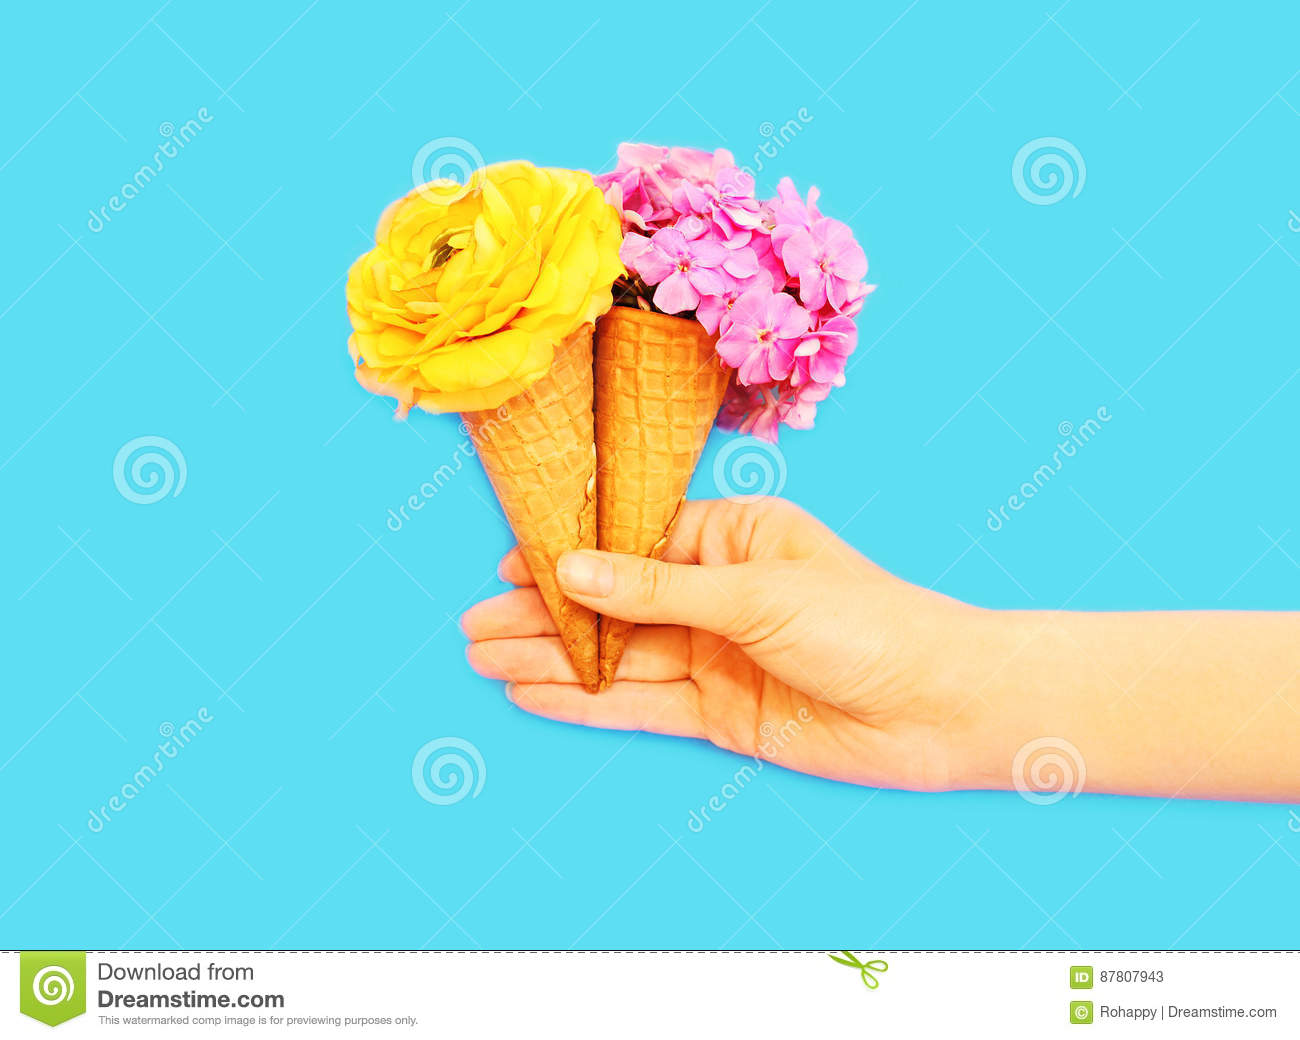 Hand holding two ice cream cone with flowers over blue